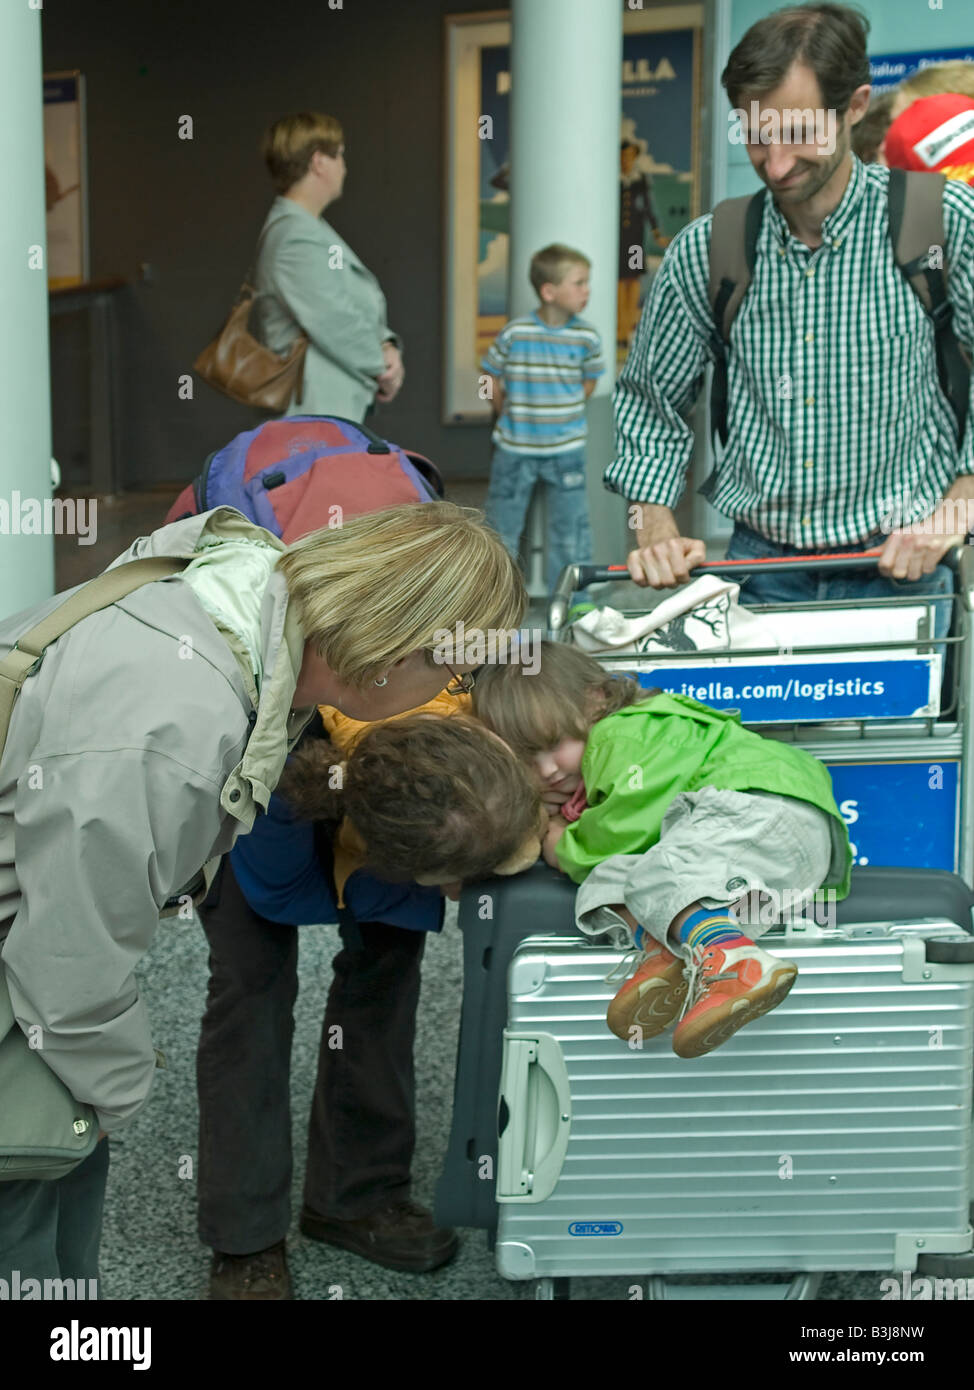 young family with a shy child on luggage passangers in arrival area of the international terminal of the Helsinki - Stock Image